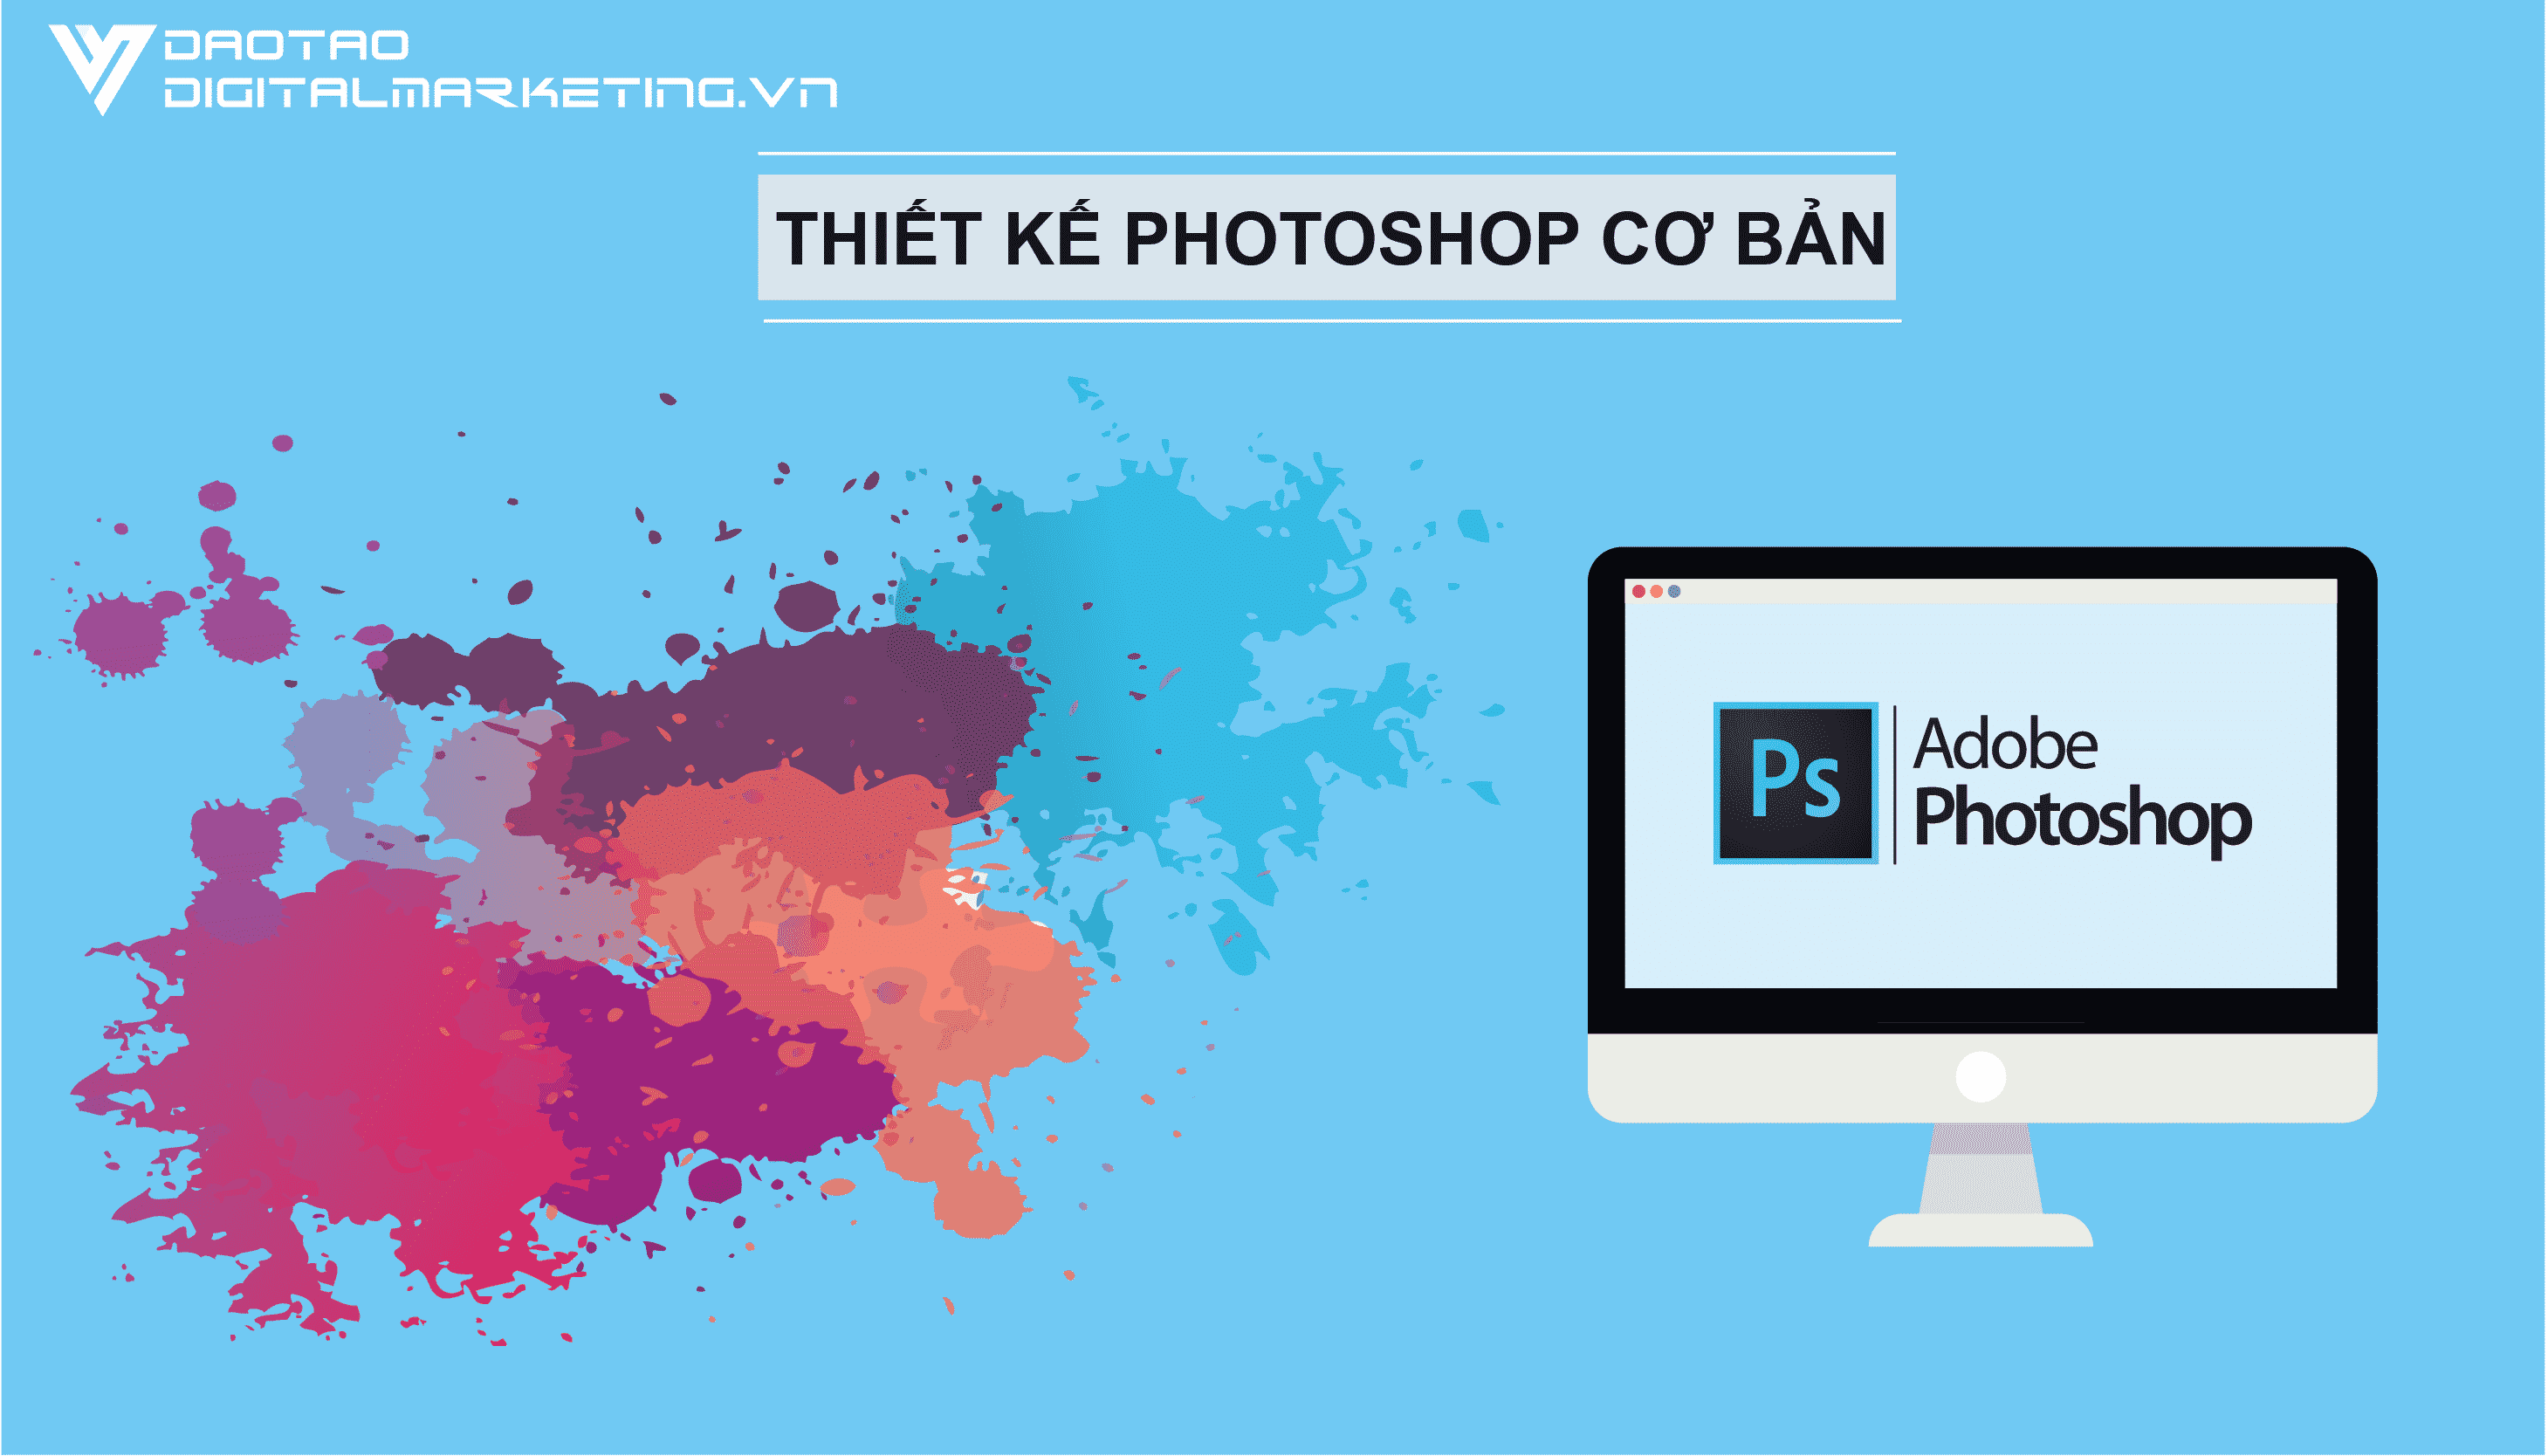 khoa-hoc-photoshop-trung-tam-dao-tao-digital-marketing